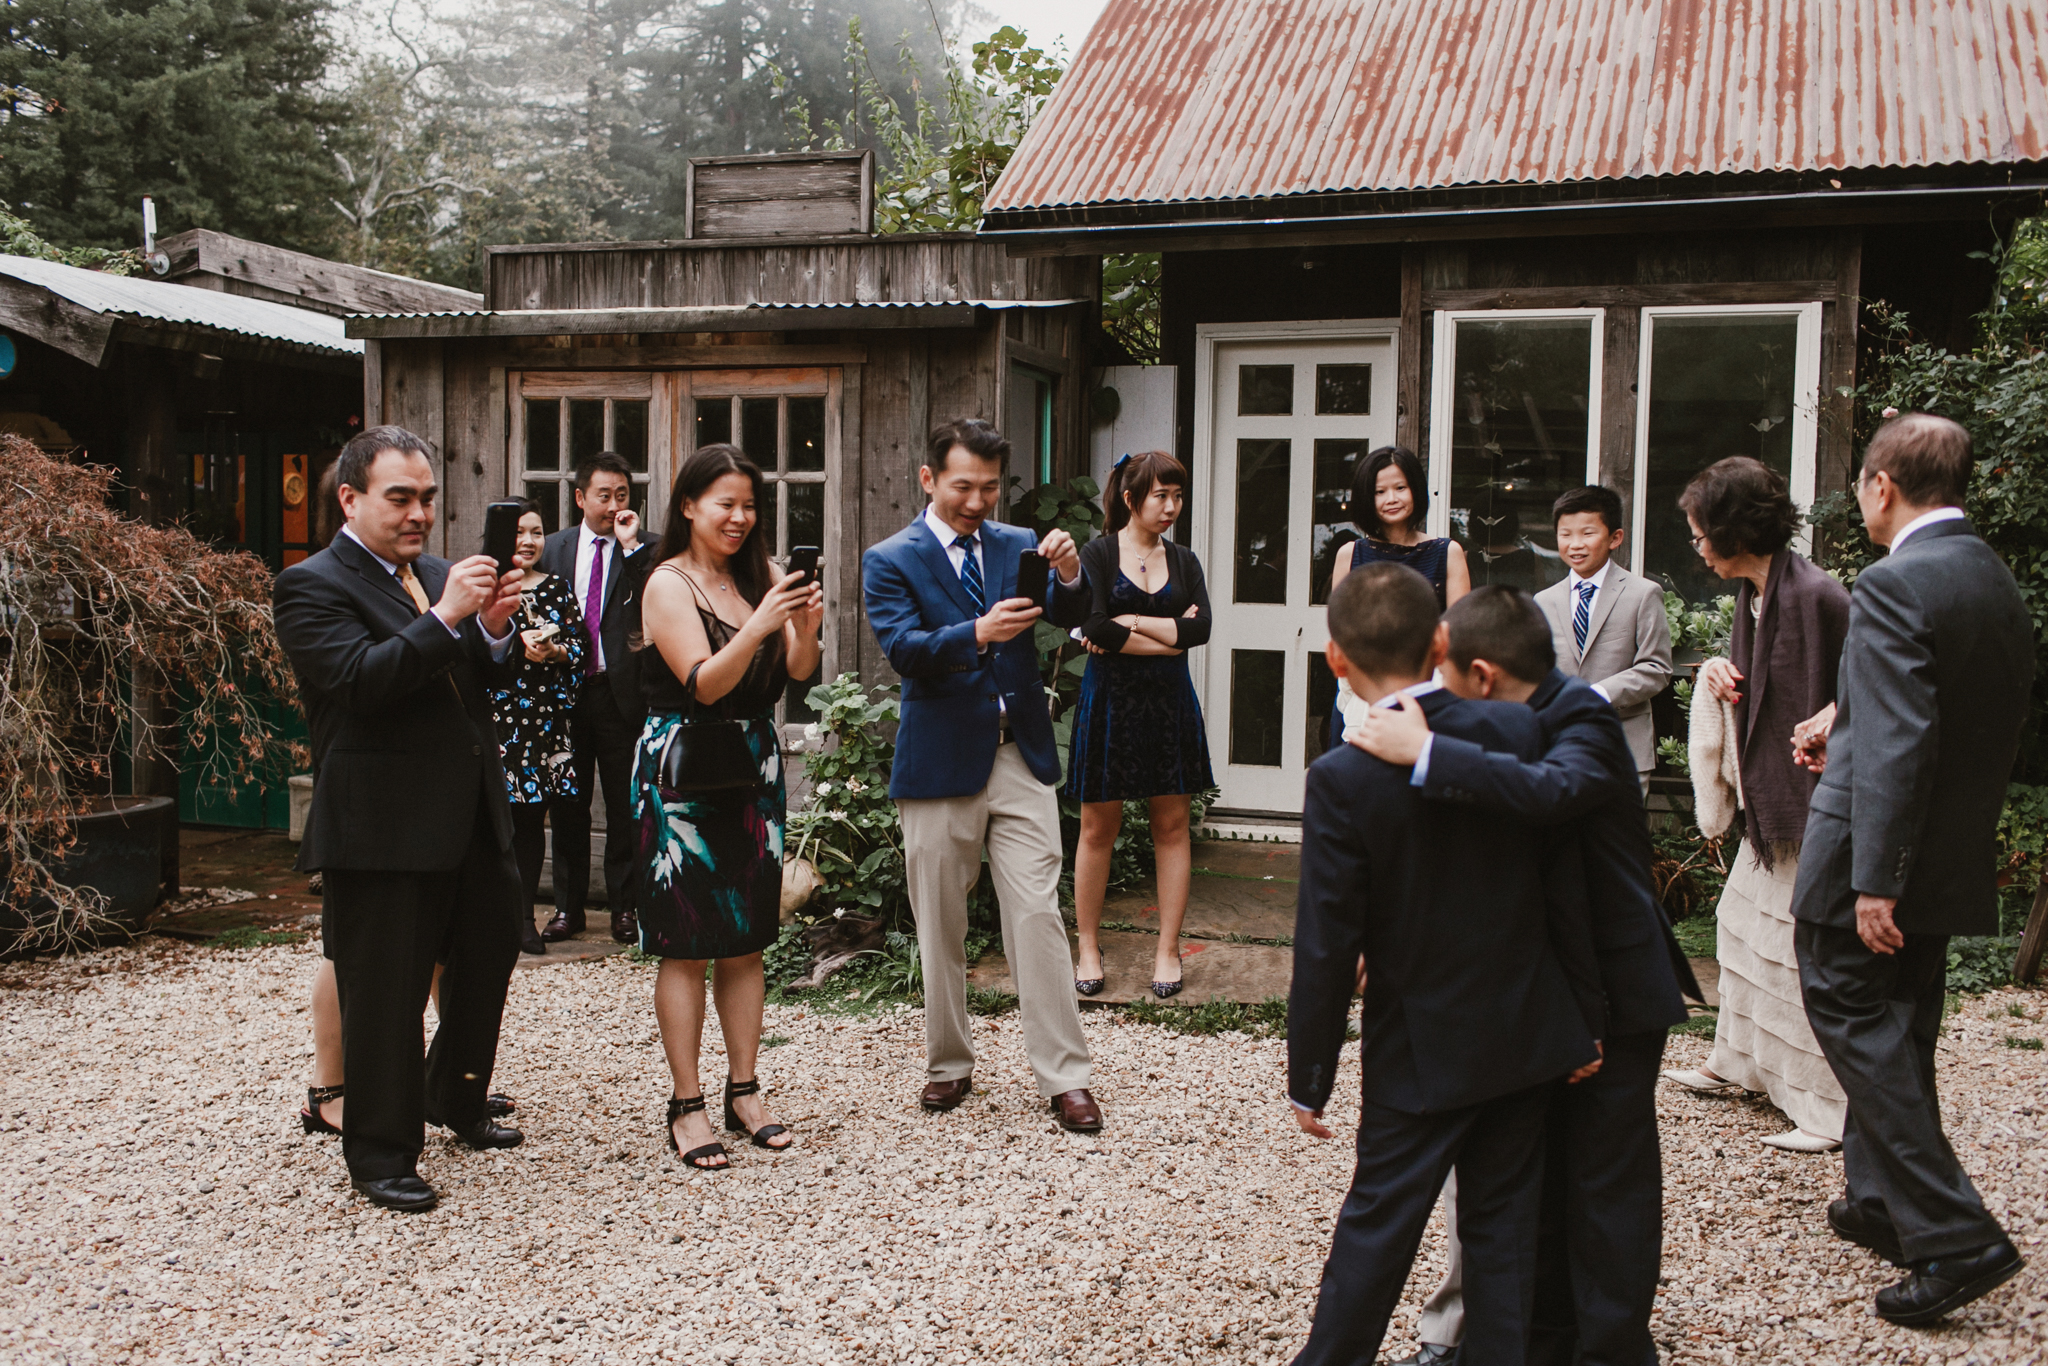 BIG SUR BAKERY WEDDING -10116